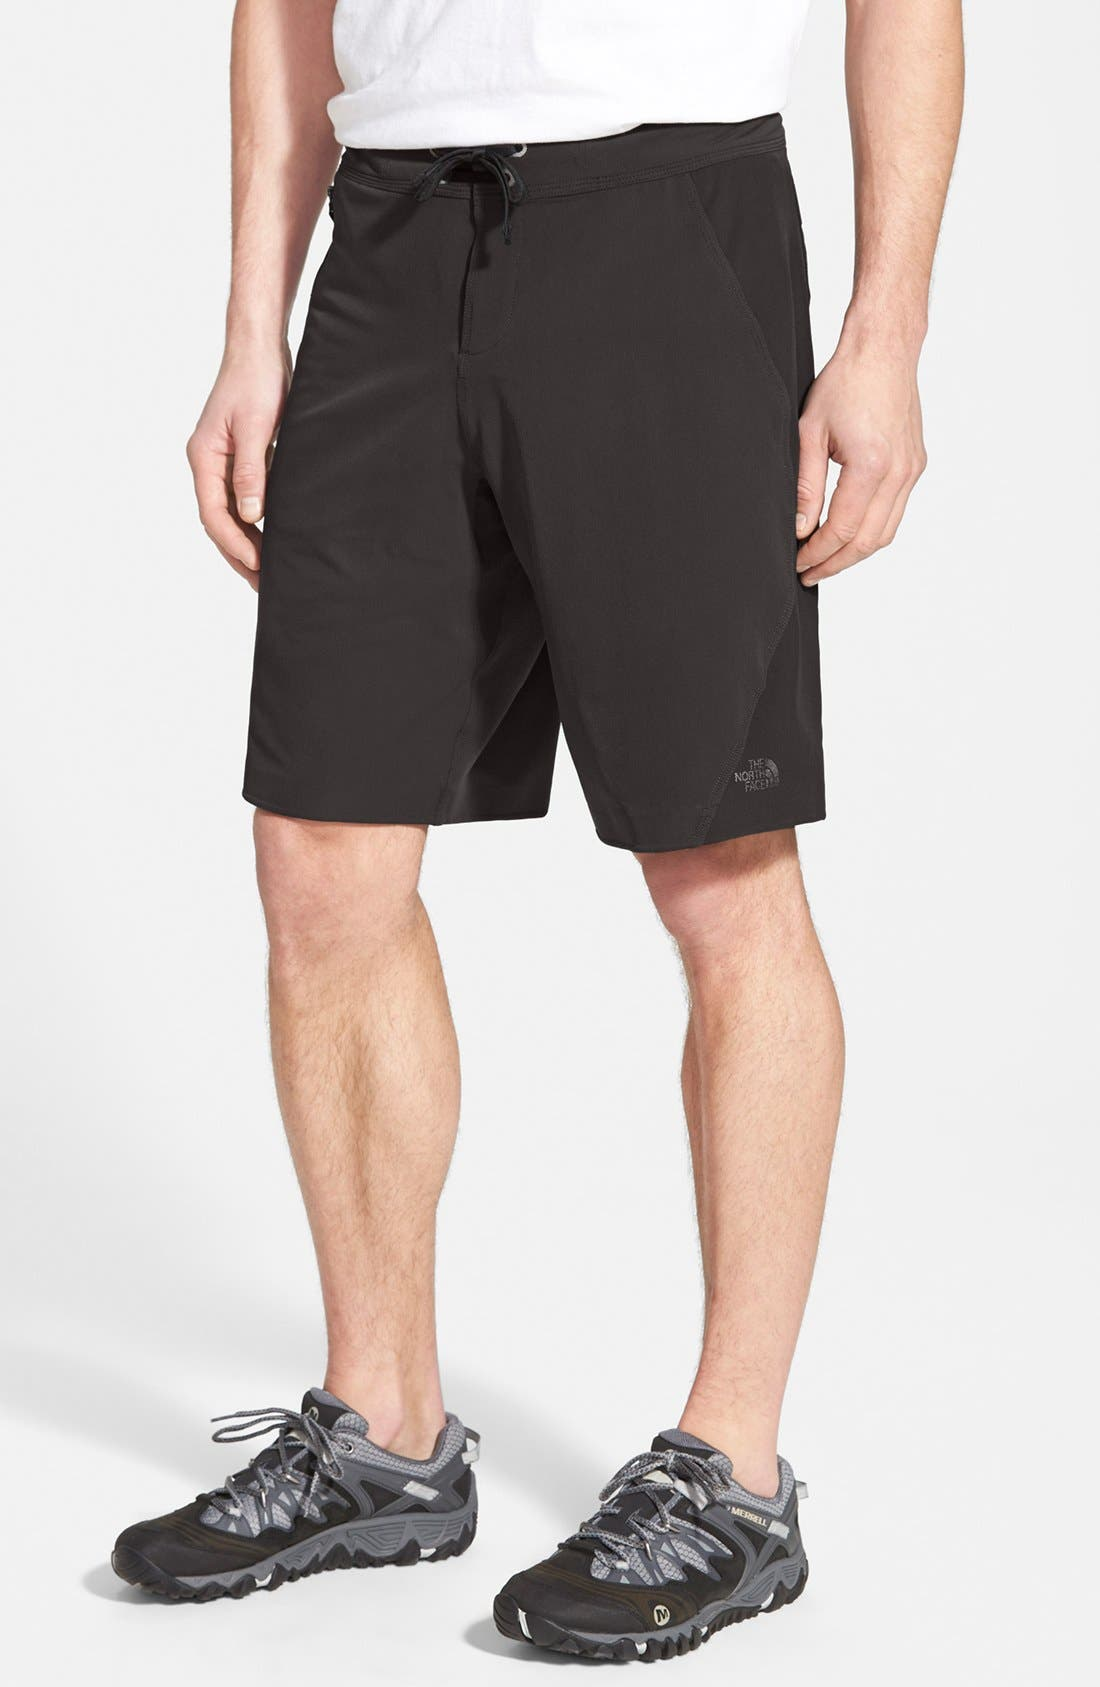 THE NORTH FACE,                             'Kilowatt' Shorts,                             Main thumbnail 1, color,                             001